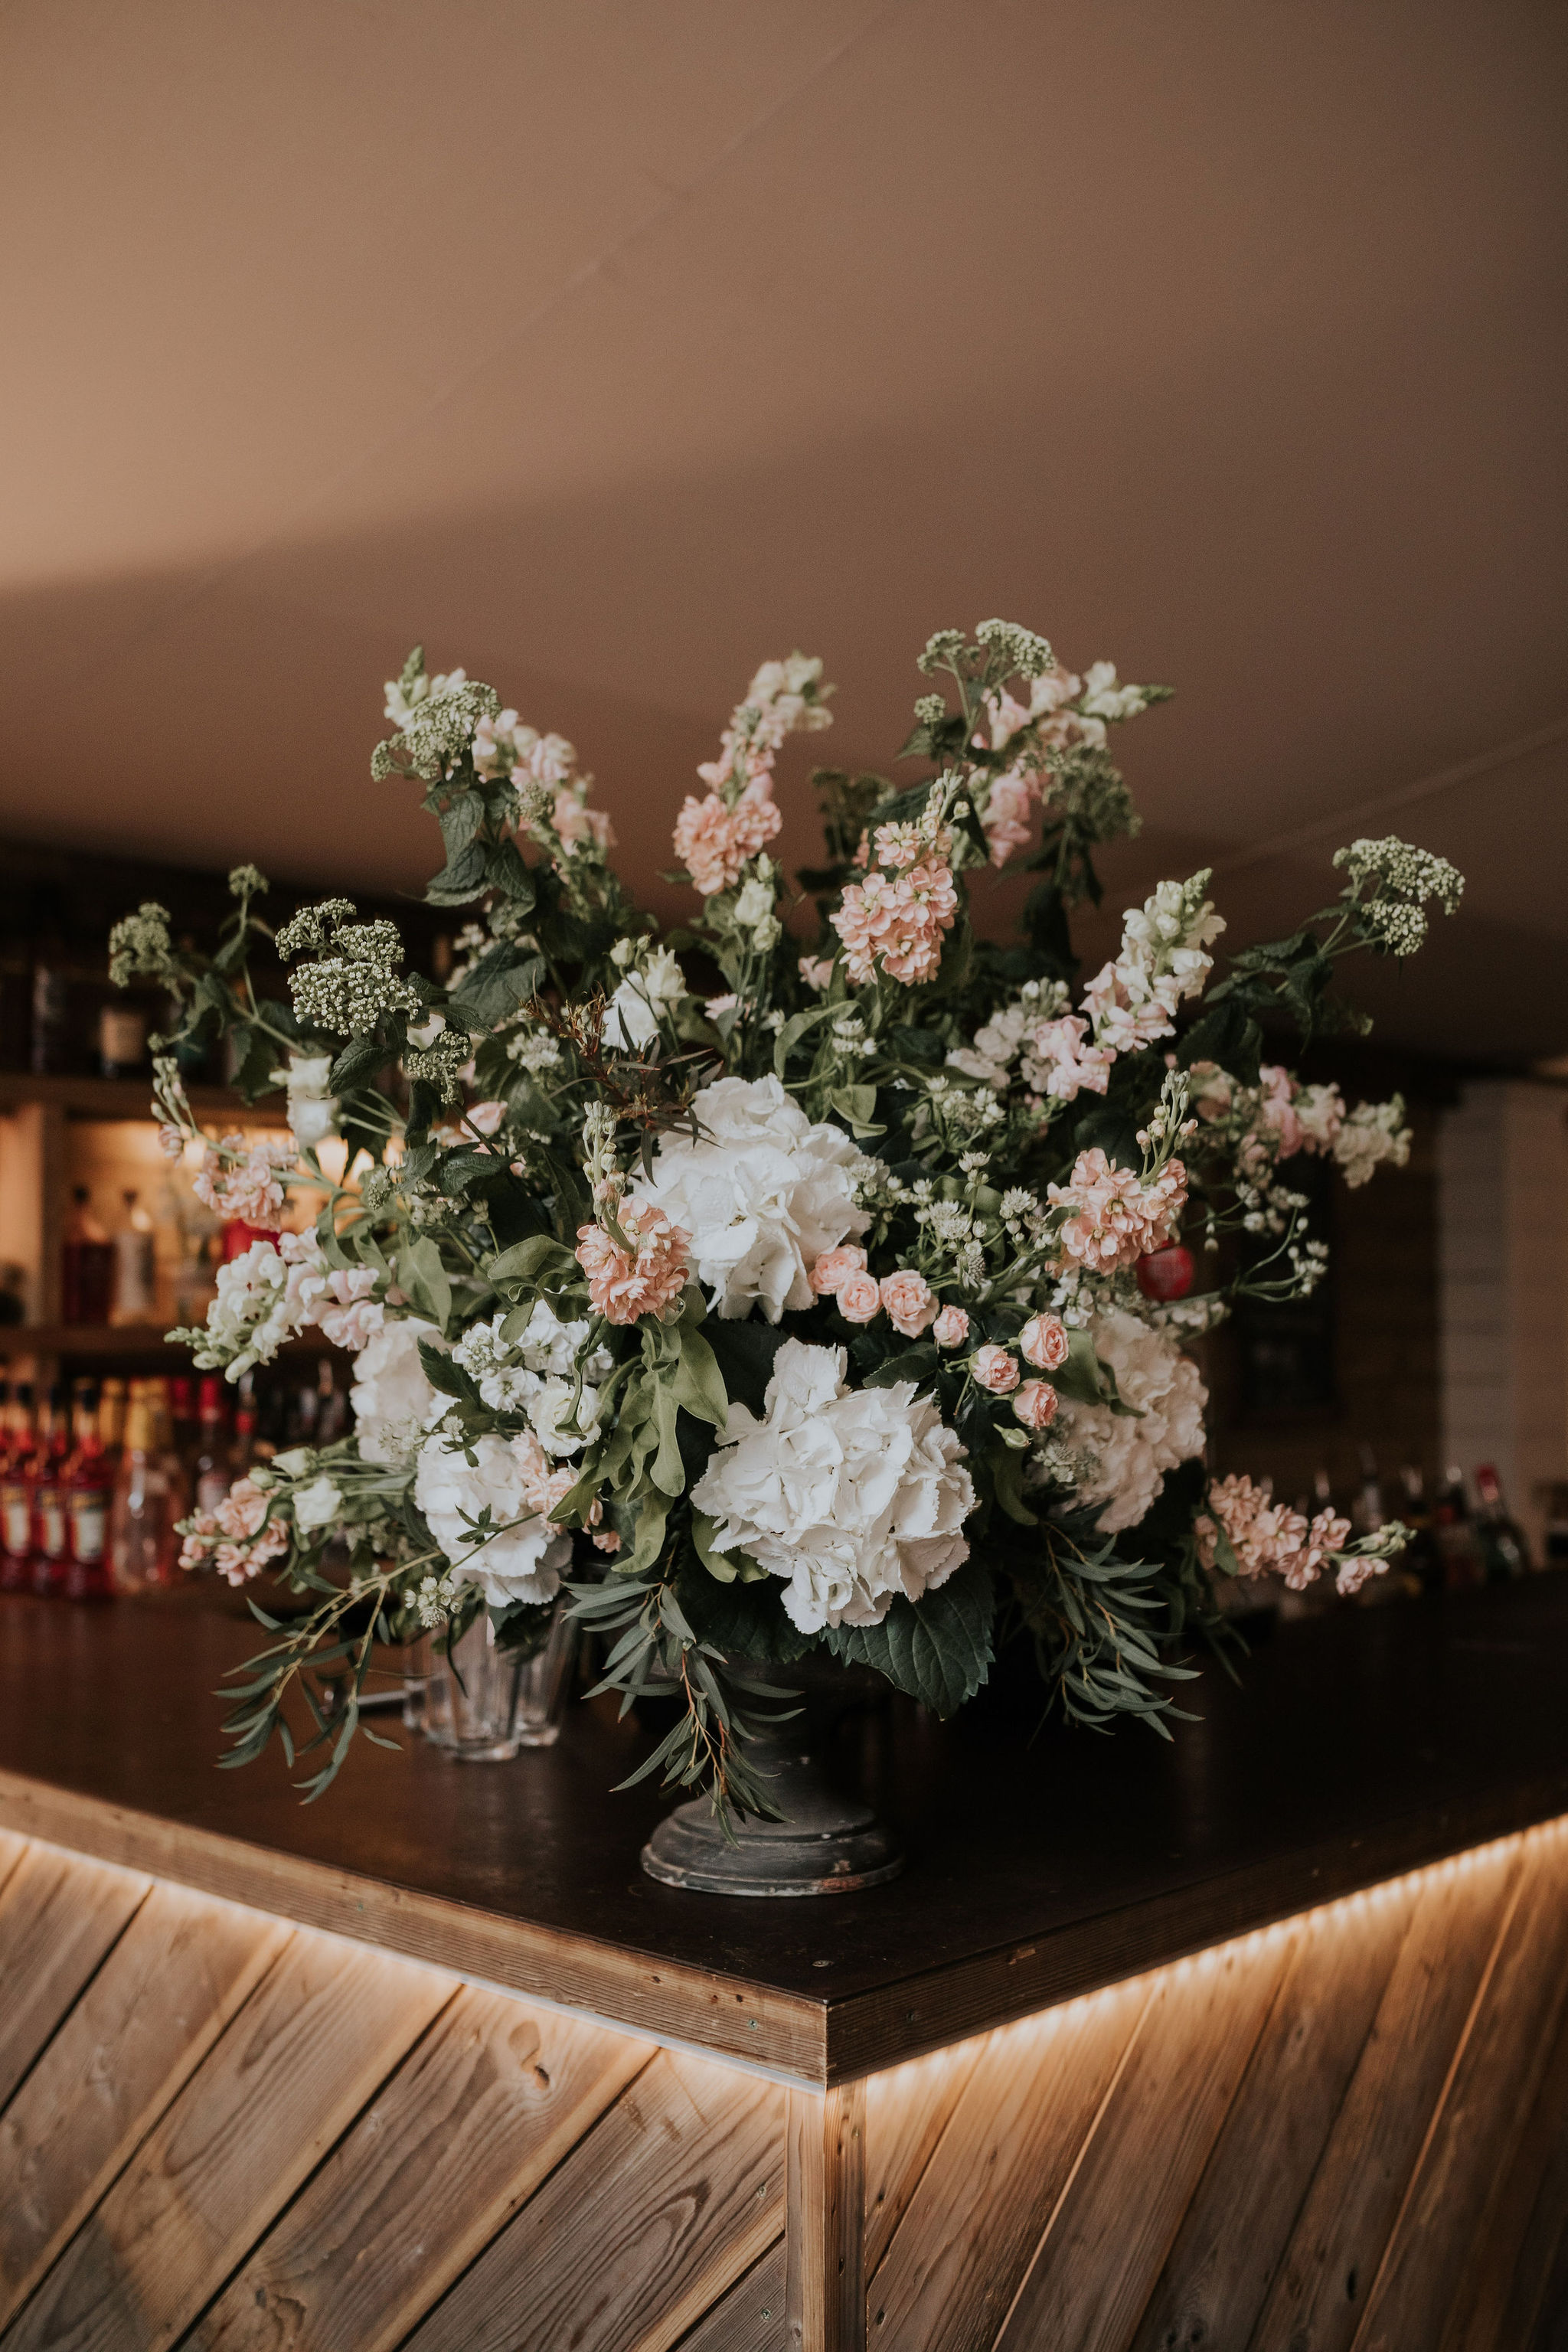 Stunning floral display of hydrangeas and stocks .jpg